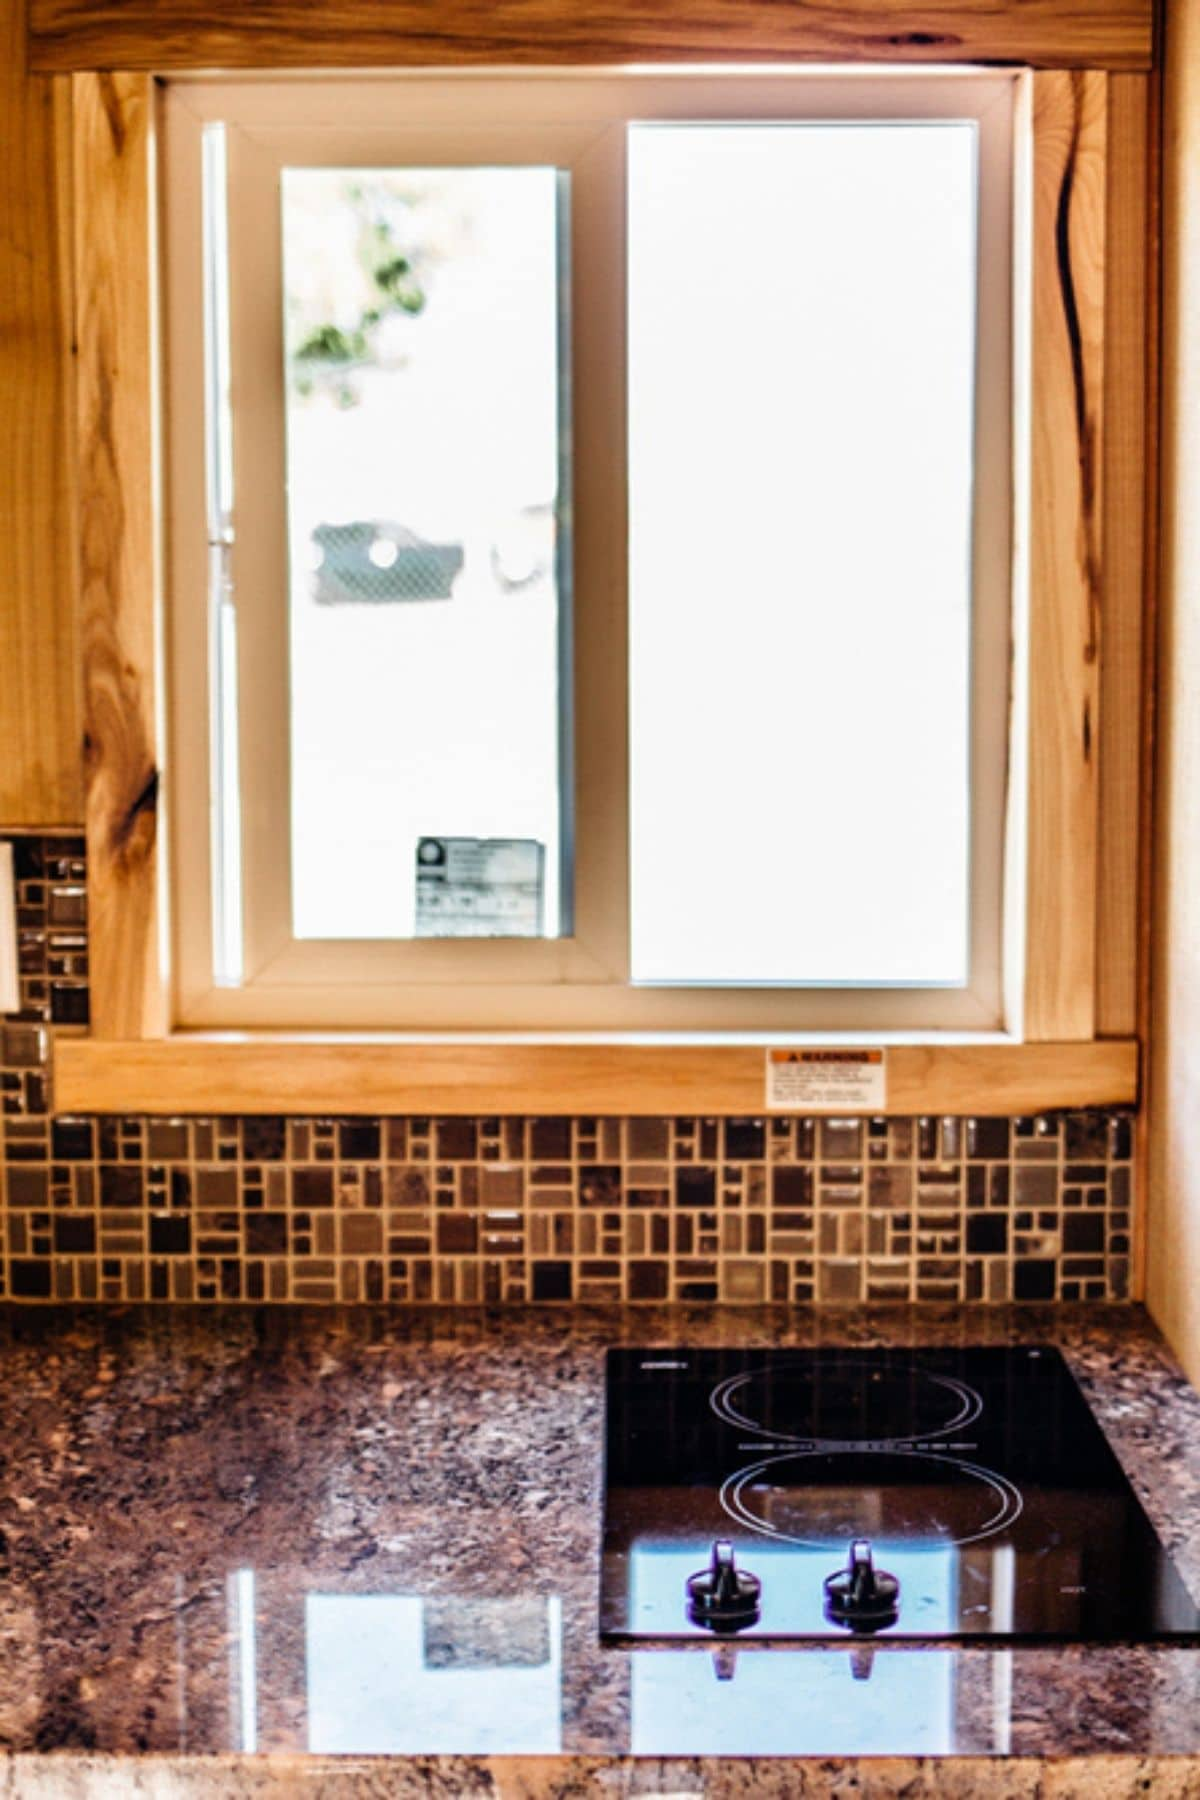 Colorful earth tone tile work underneath window above cooktop